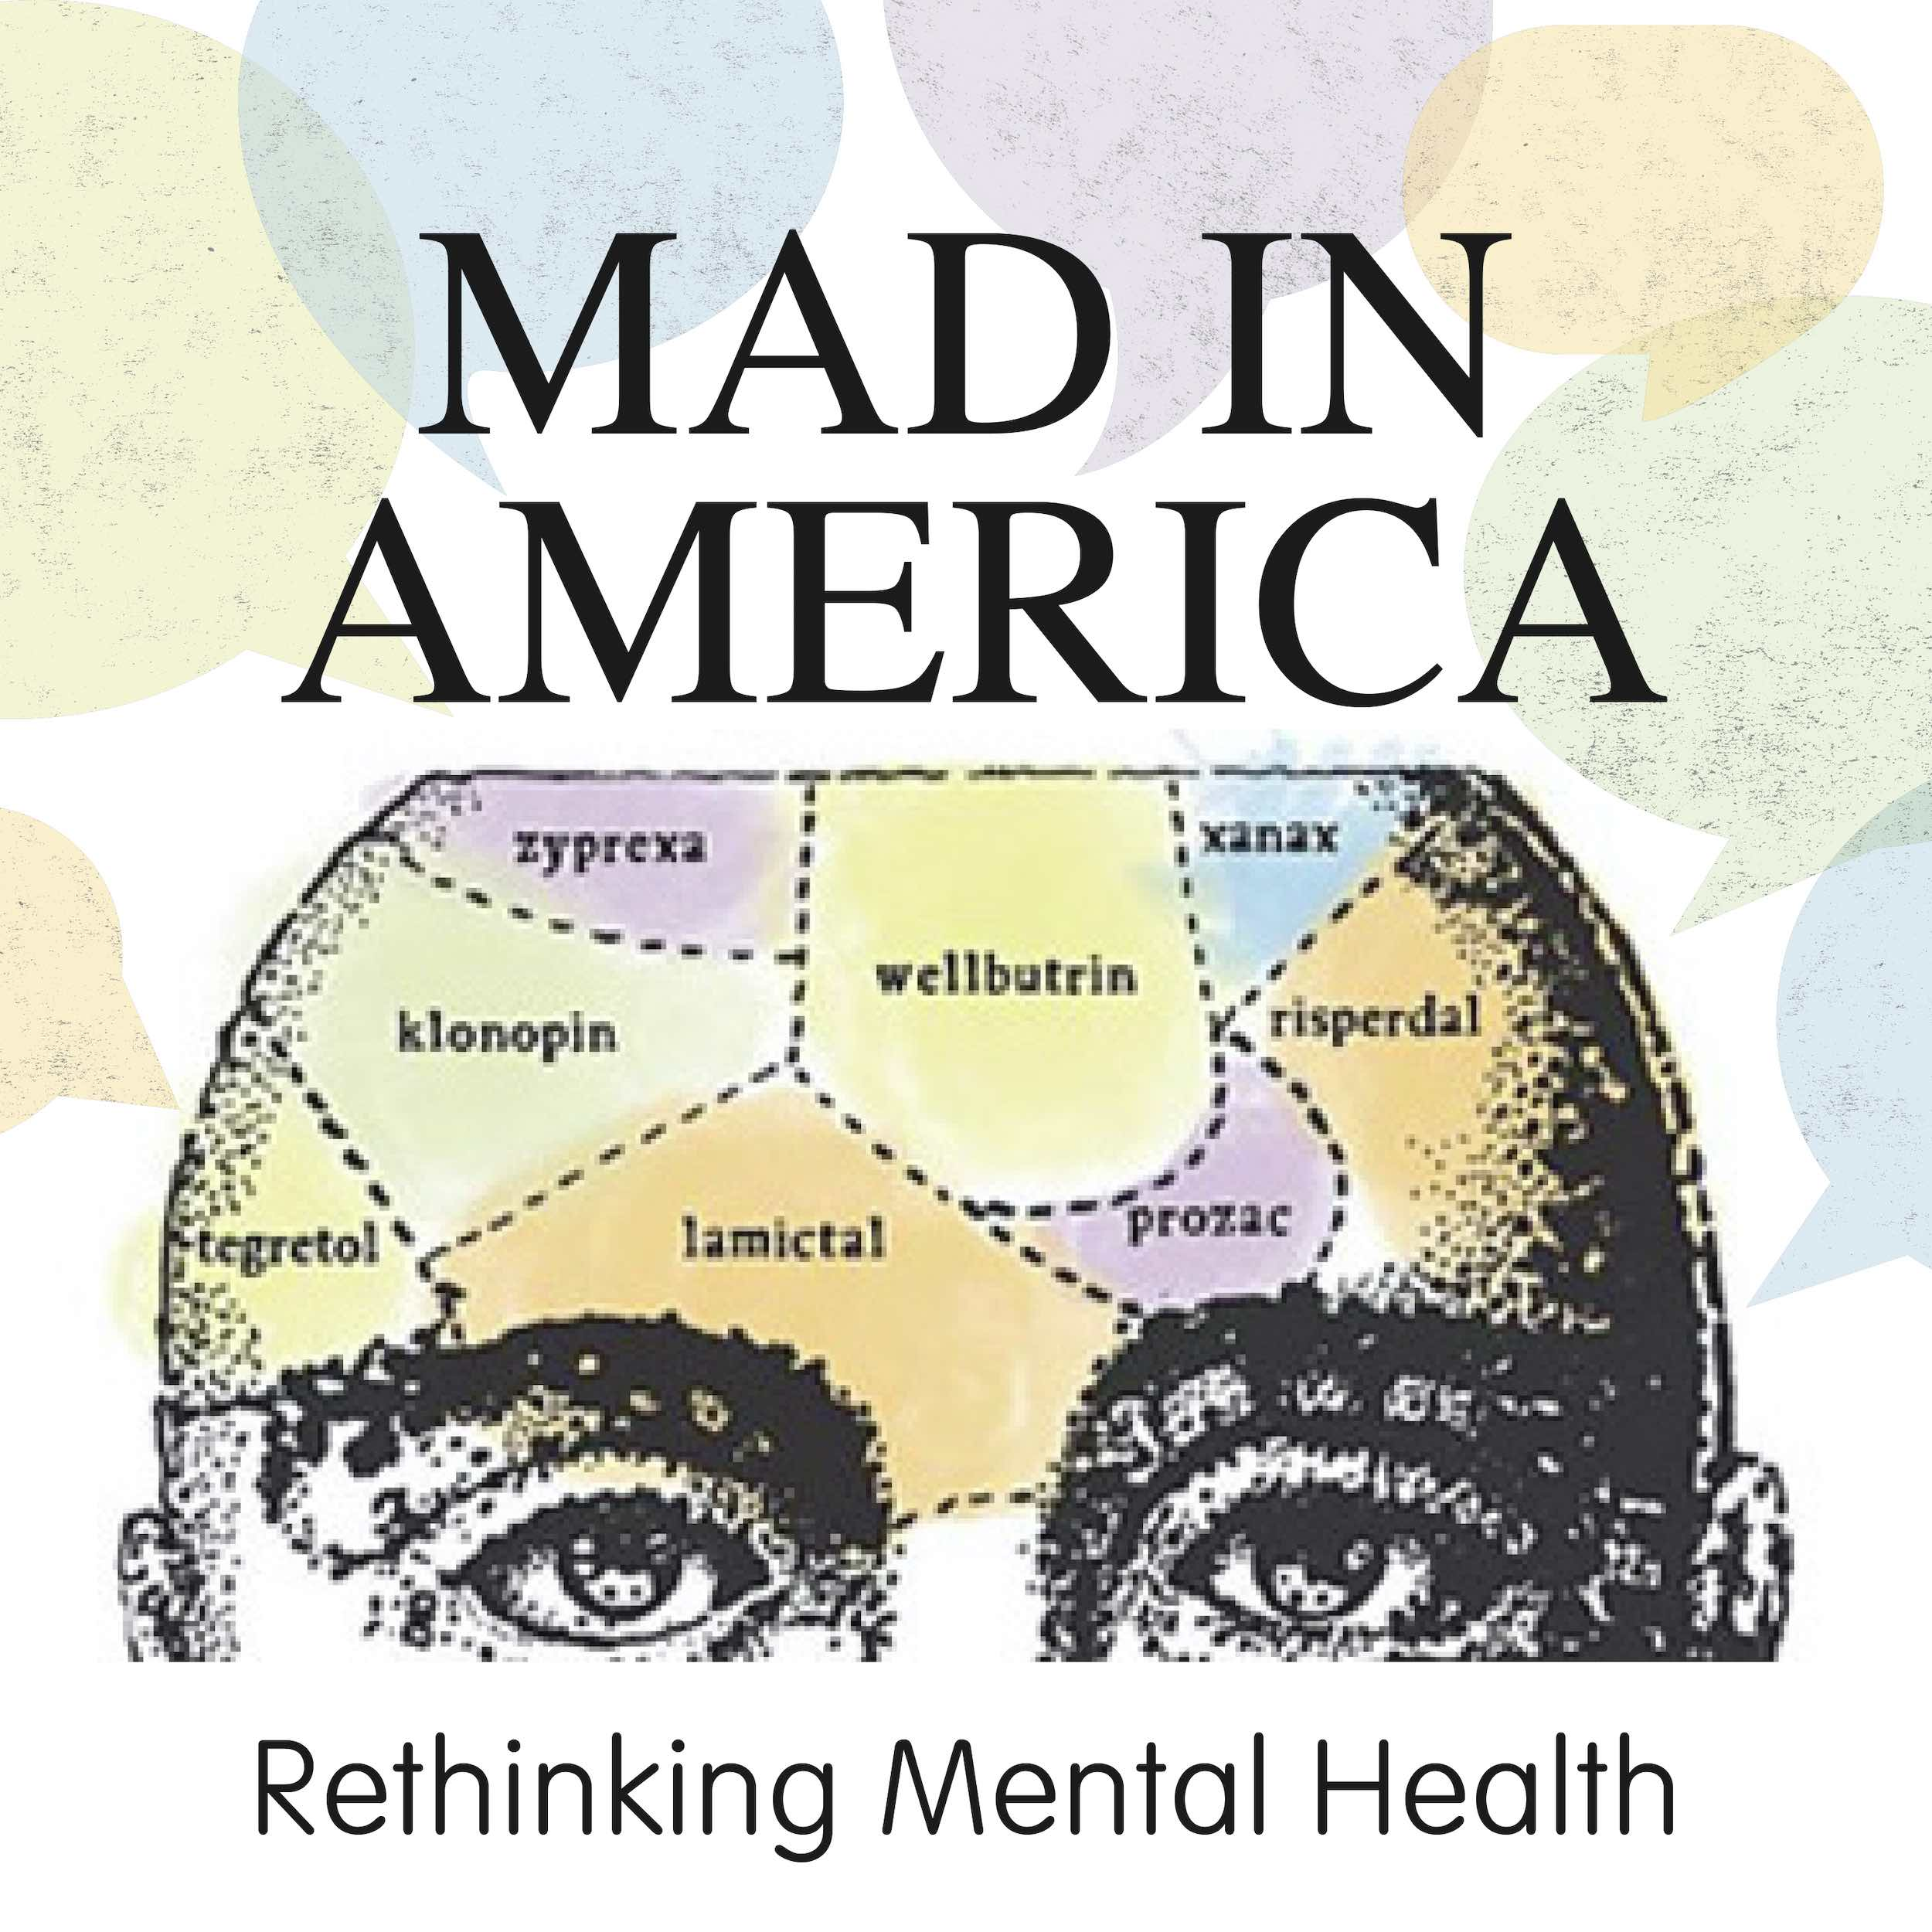 Mad in America: Rethinking Mental Health - Lucas Richert - Psychiatry and the Counterculture